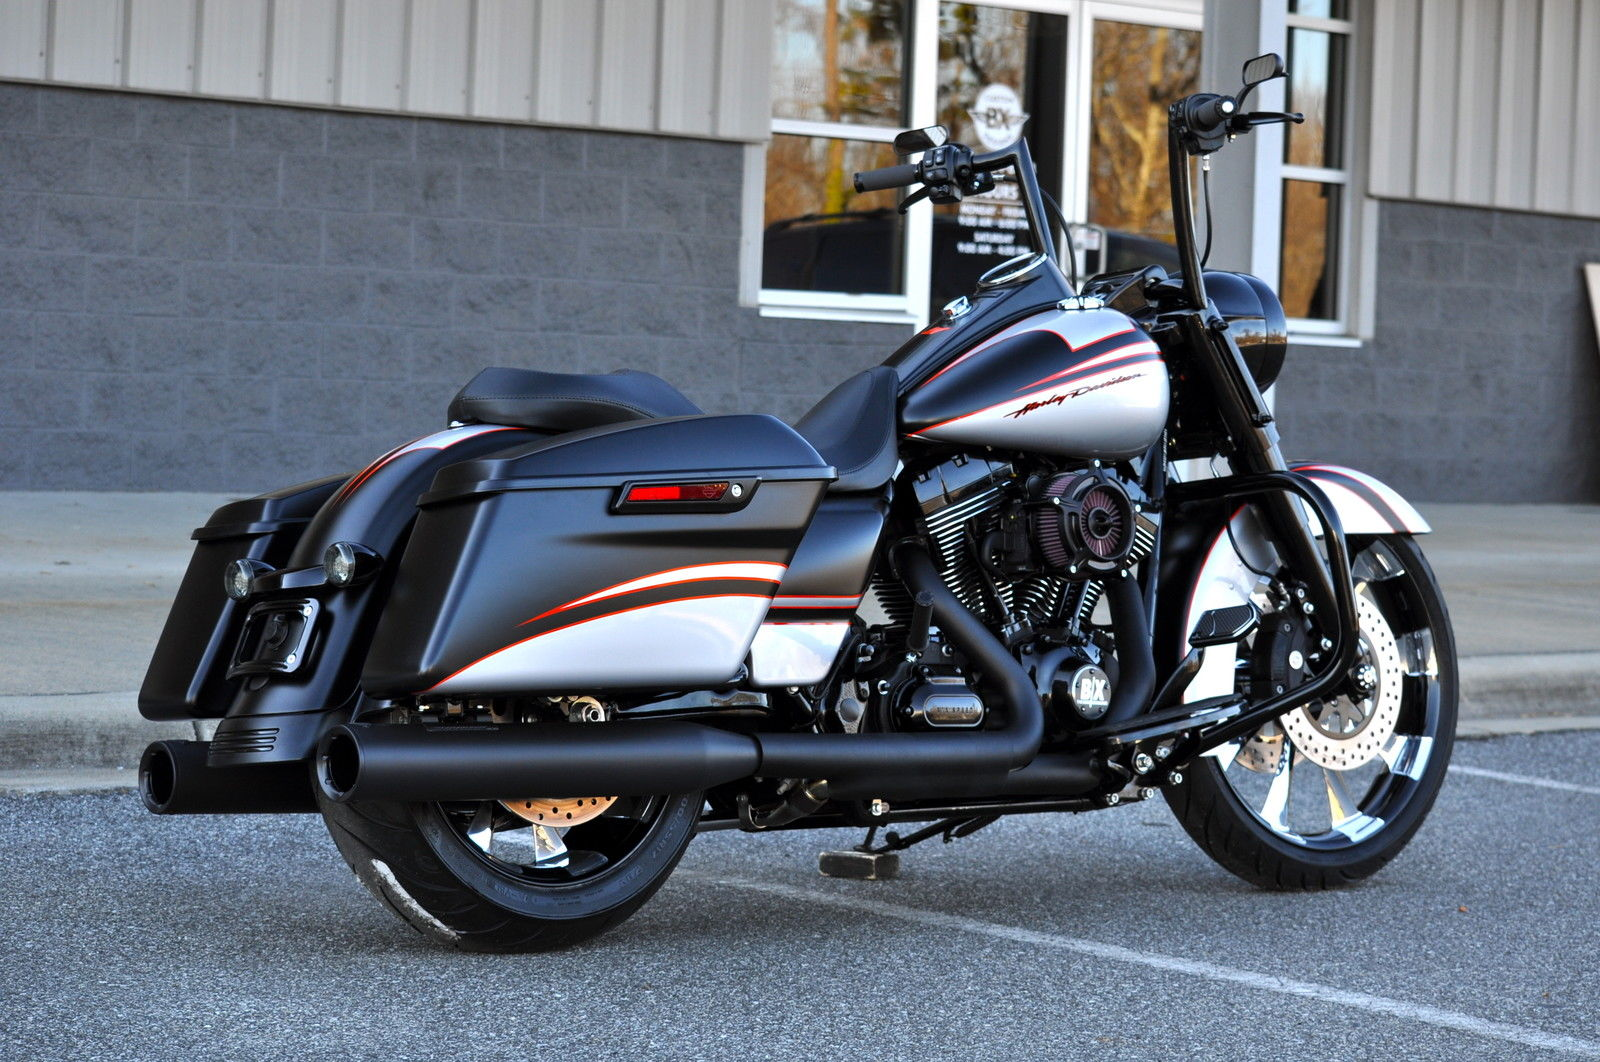 Harley Road King For Sale >> 2015 ROAD KING CUSTOM A.B.S. **MINT** $15,000.00 IN XTRA'S! ONLY 925 MILES!!